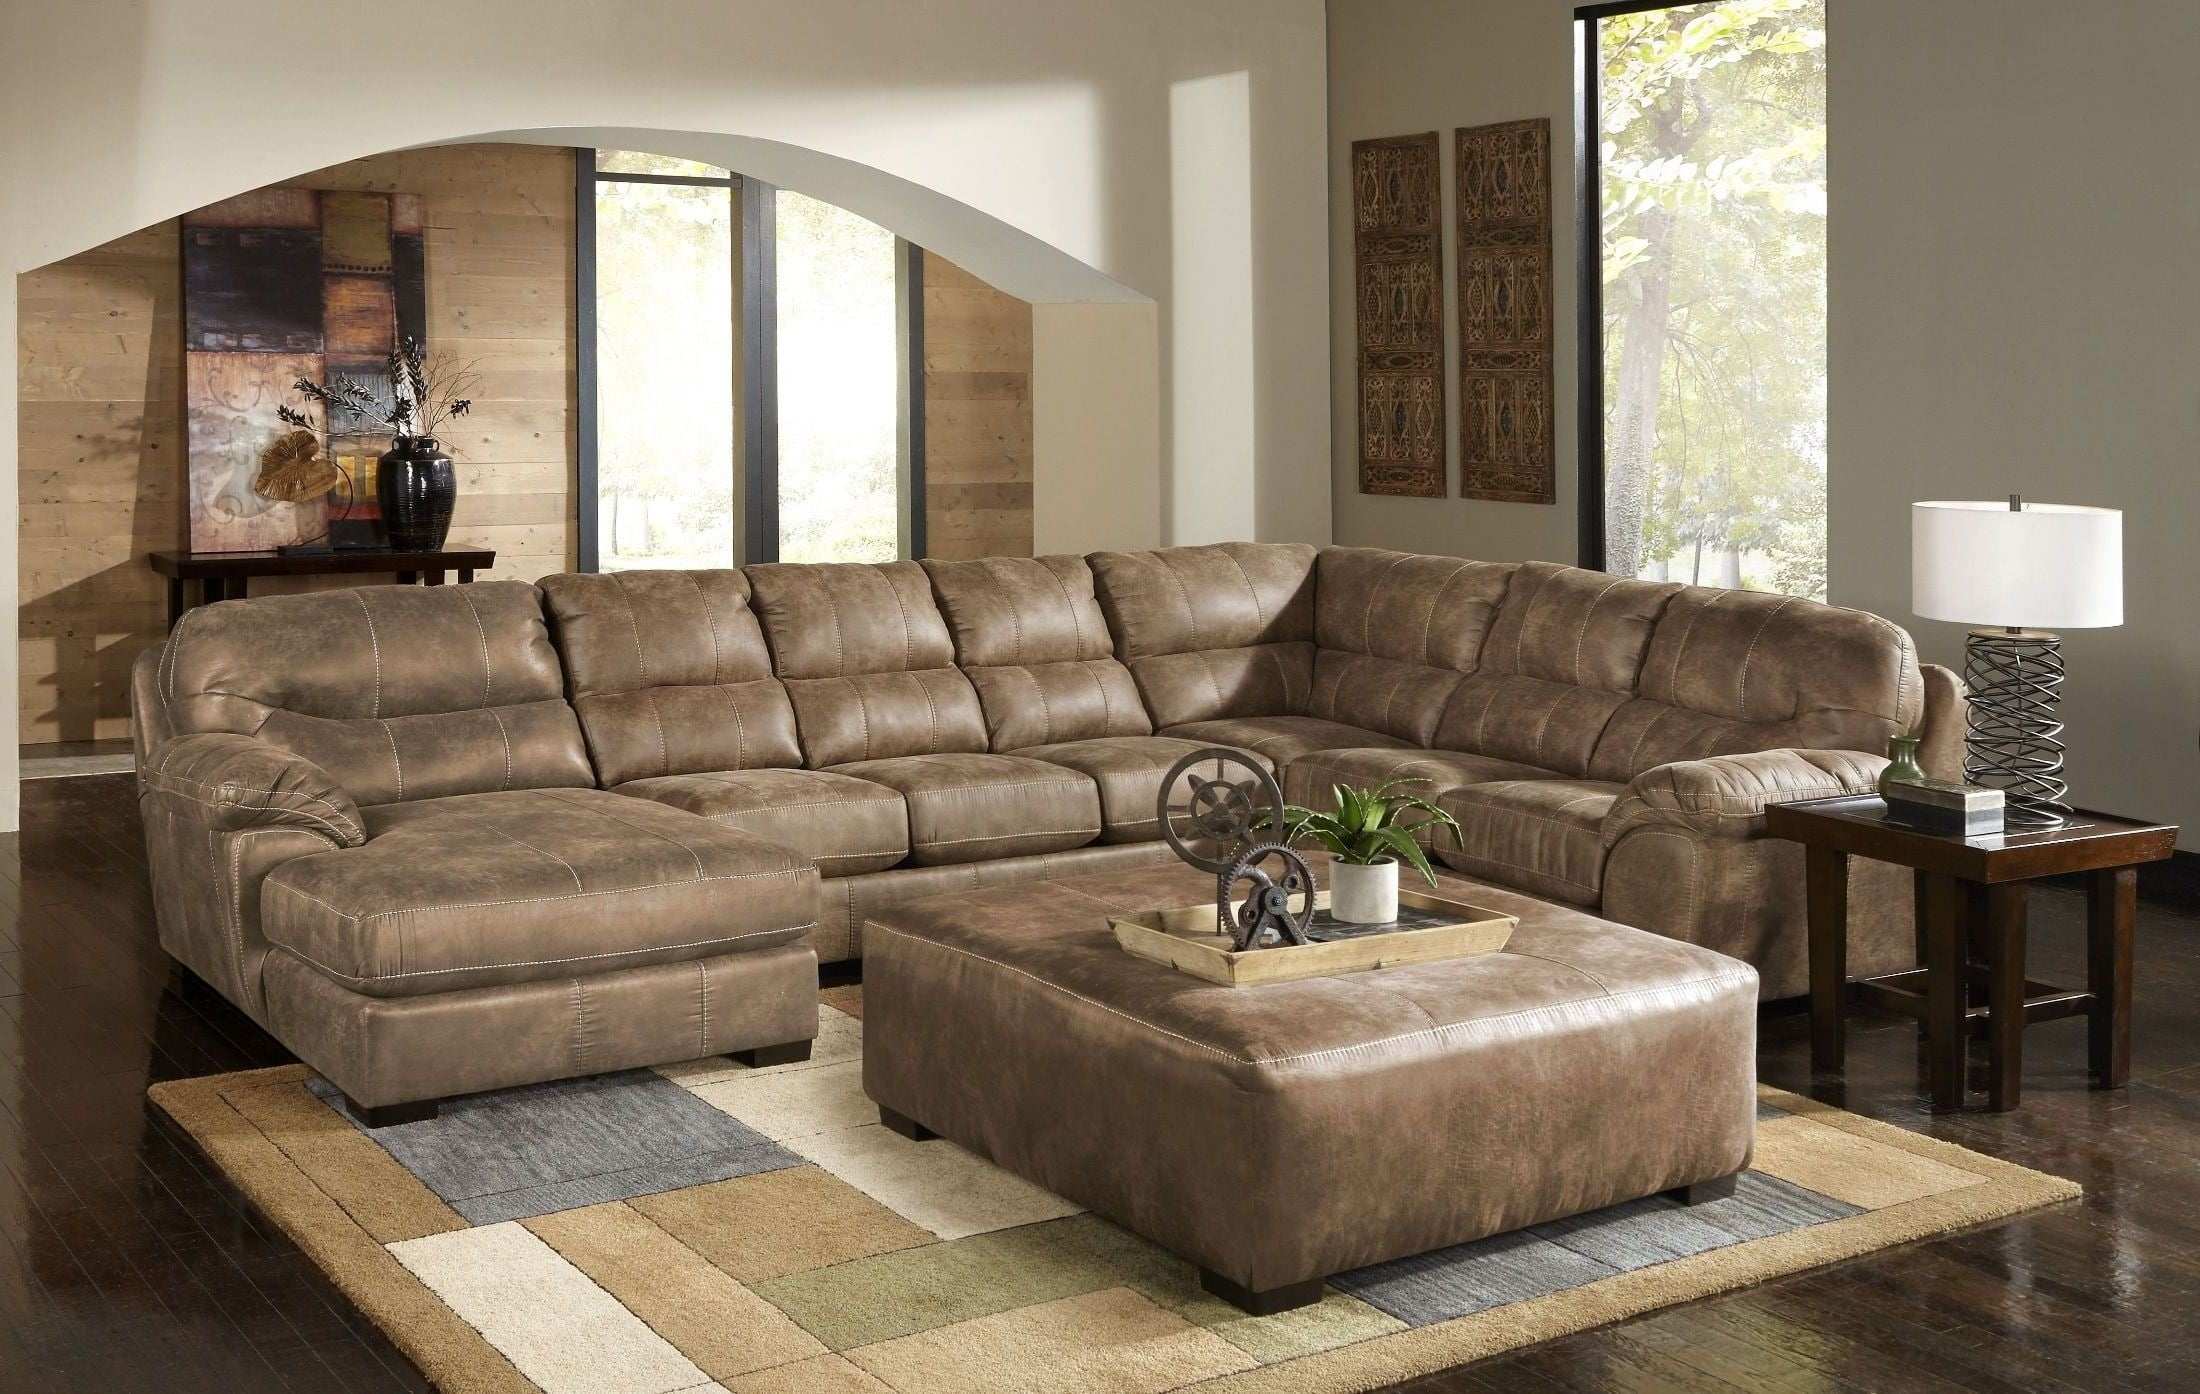 Grant Silt Laf Chaise Sectional, 4453-75-122749302749, Jackson in Avery 2 Piece Sectionals With Raf Armless Chaise